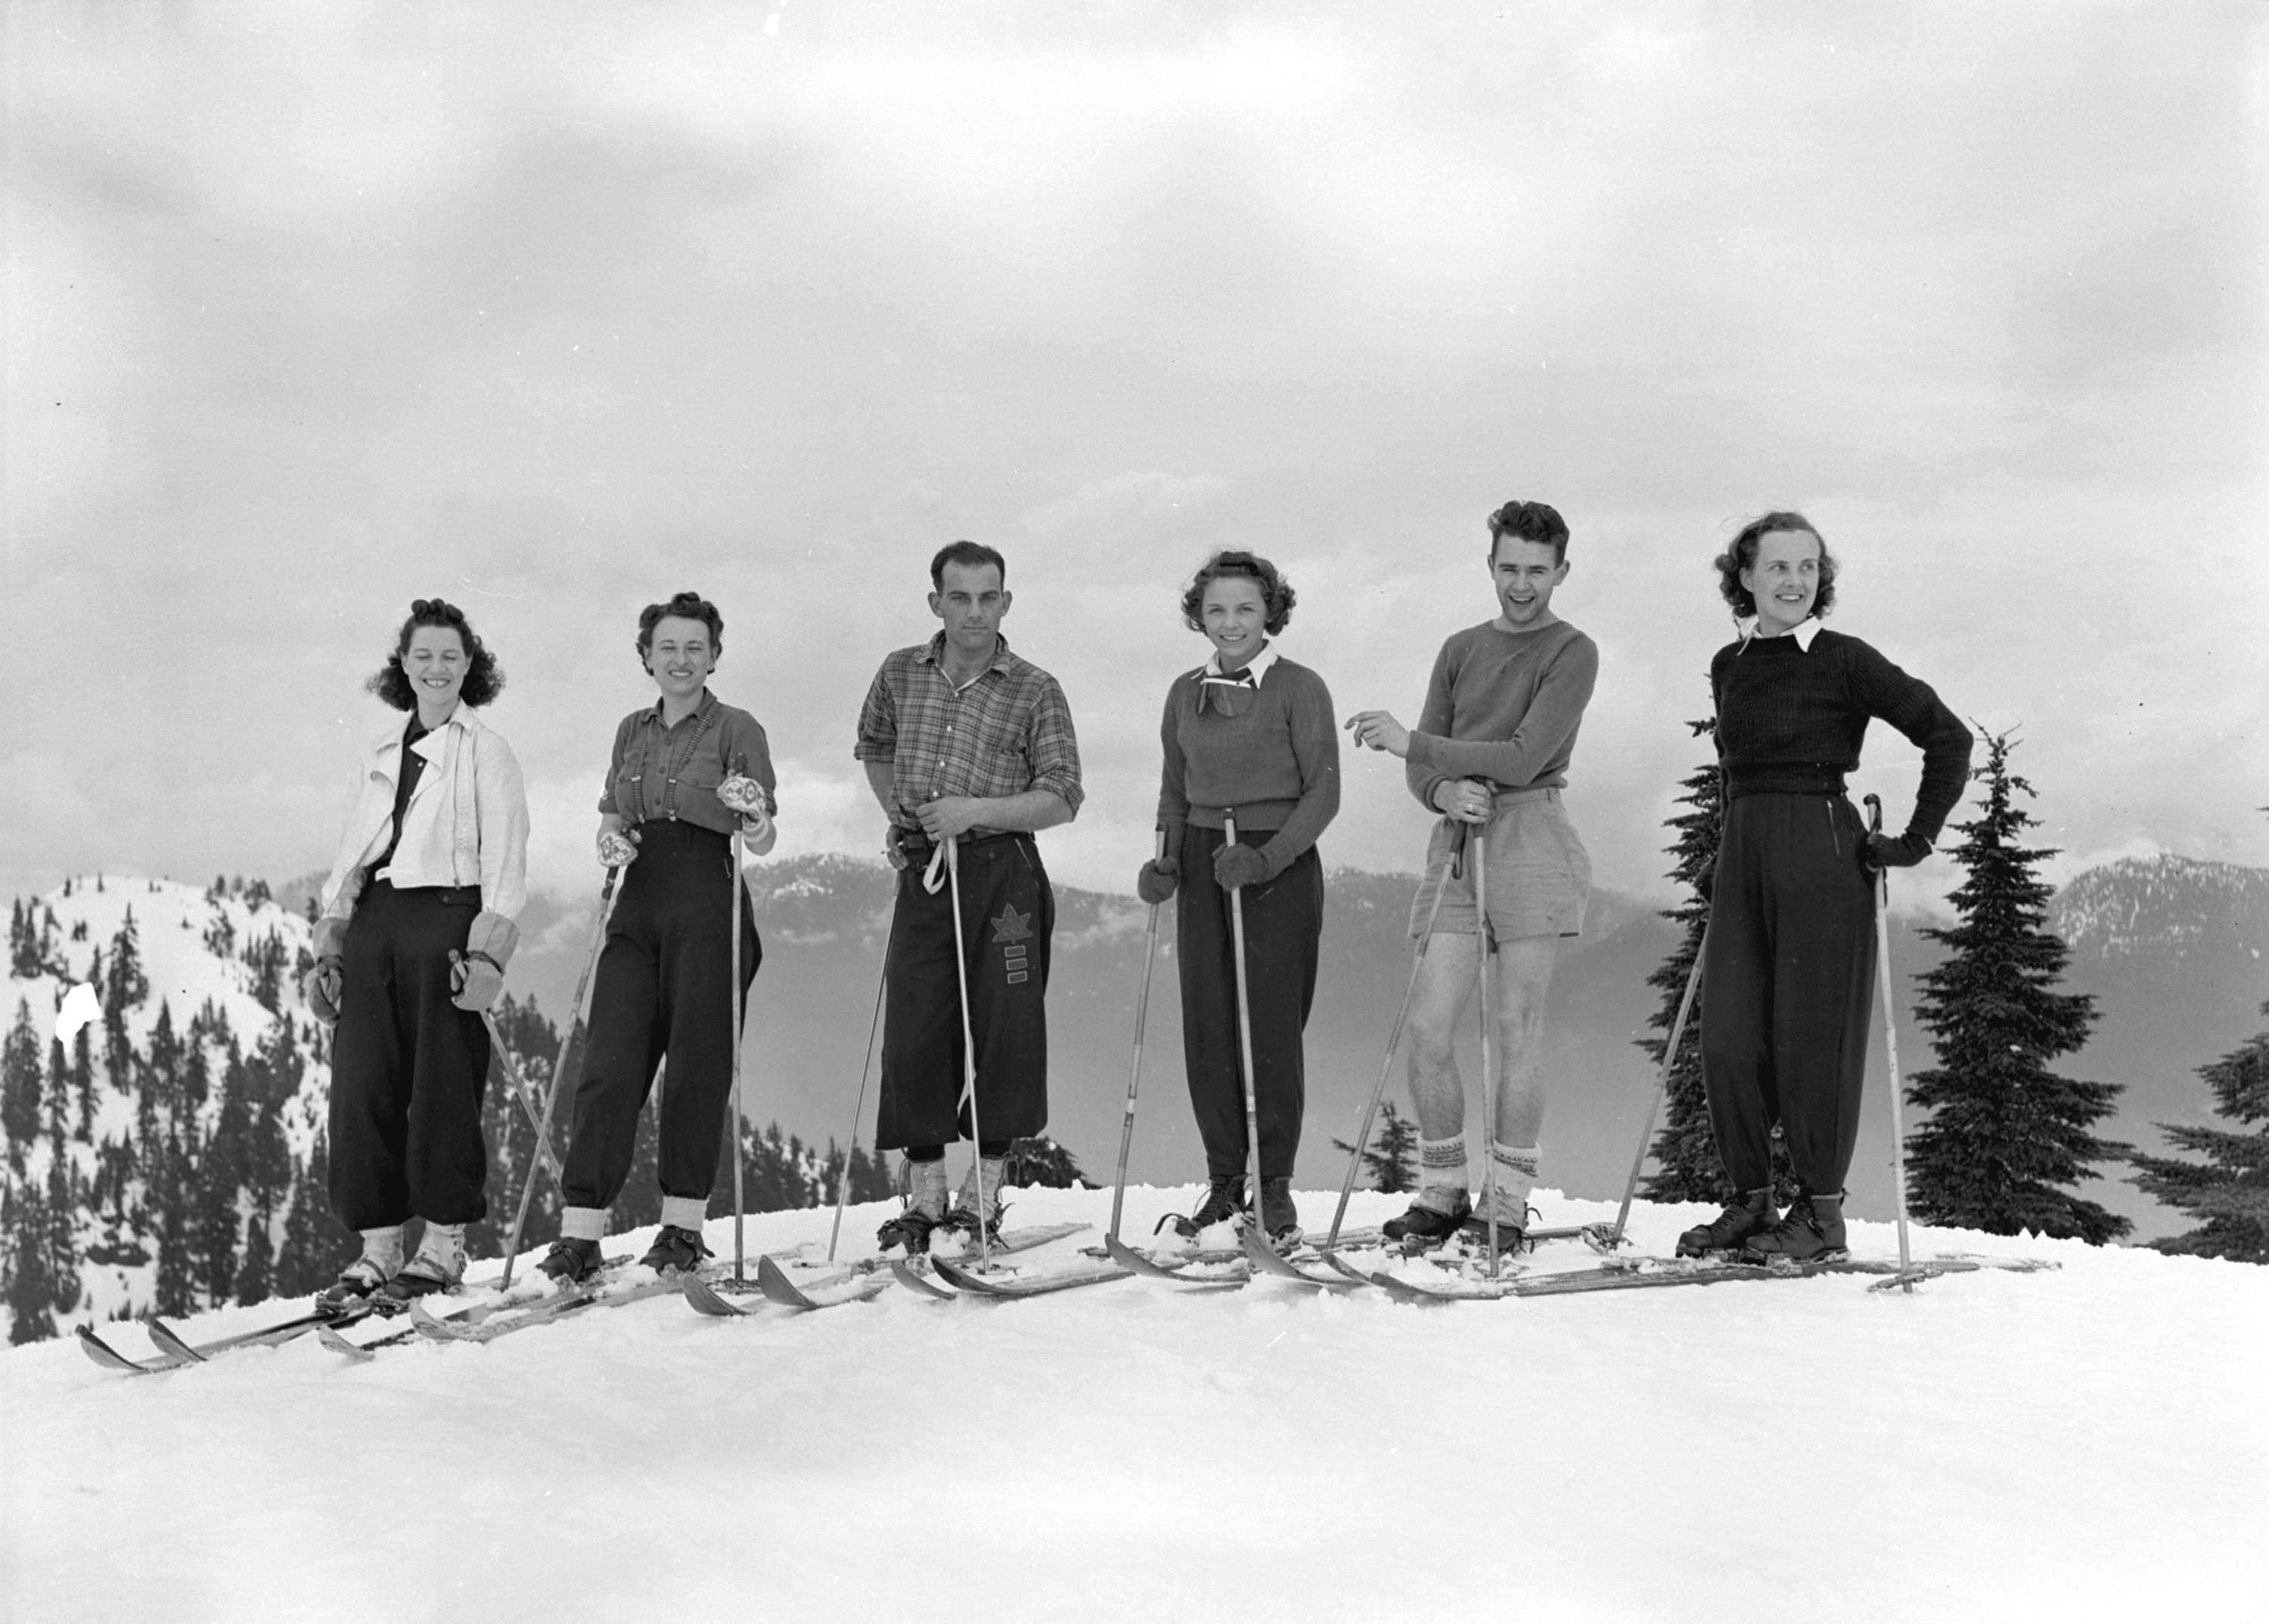 10 Vintage Ski Photos From Local Vancouver Mountains